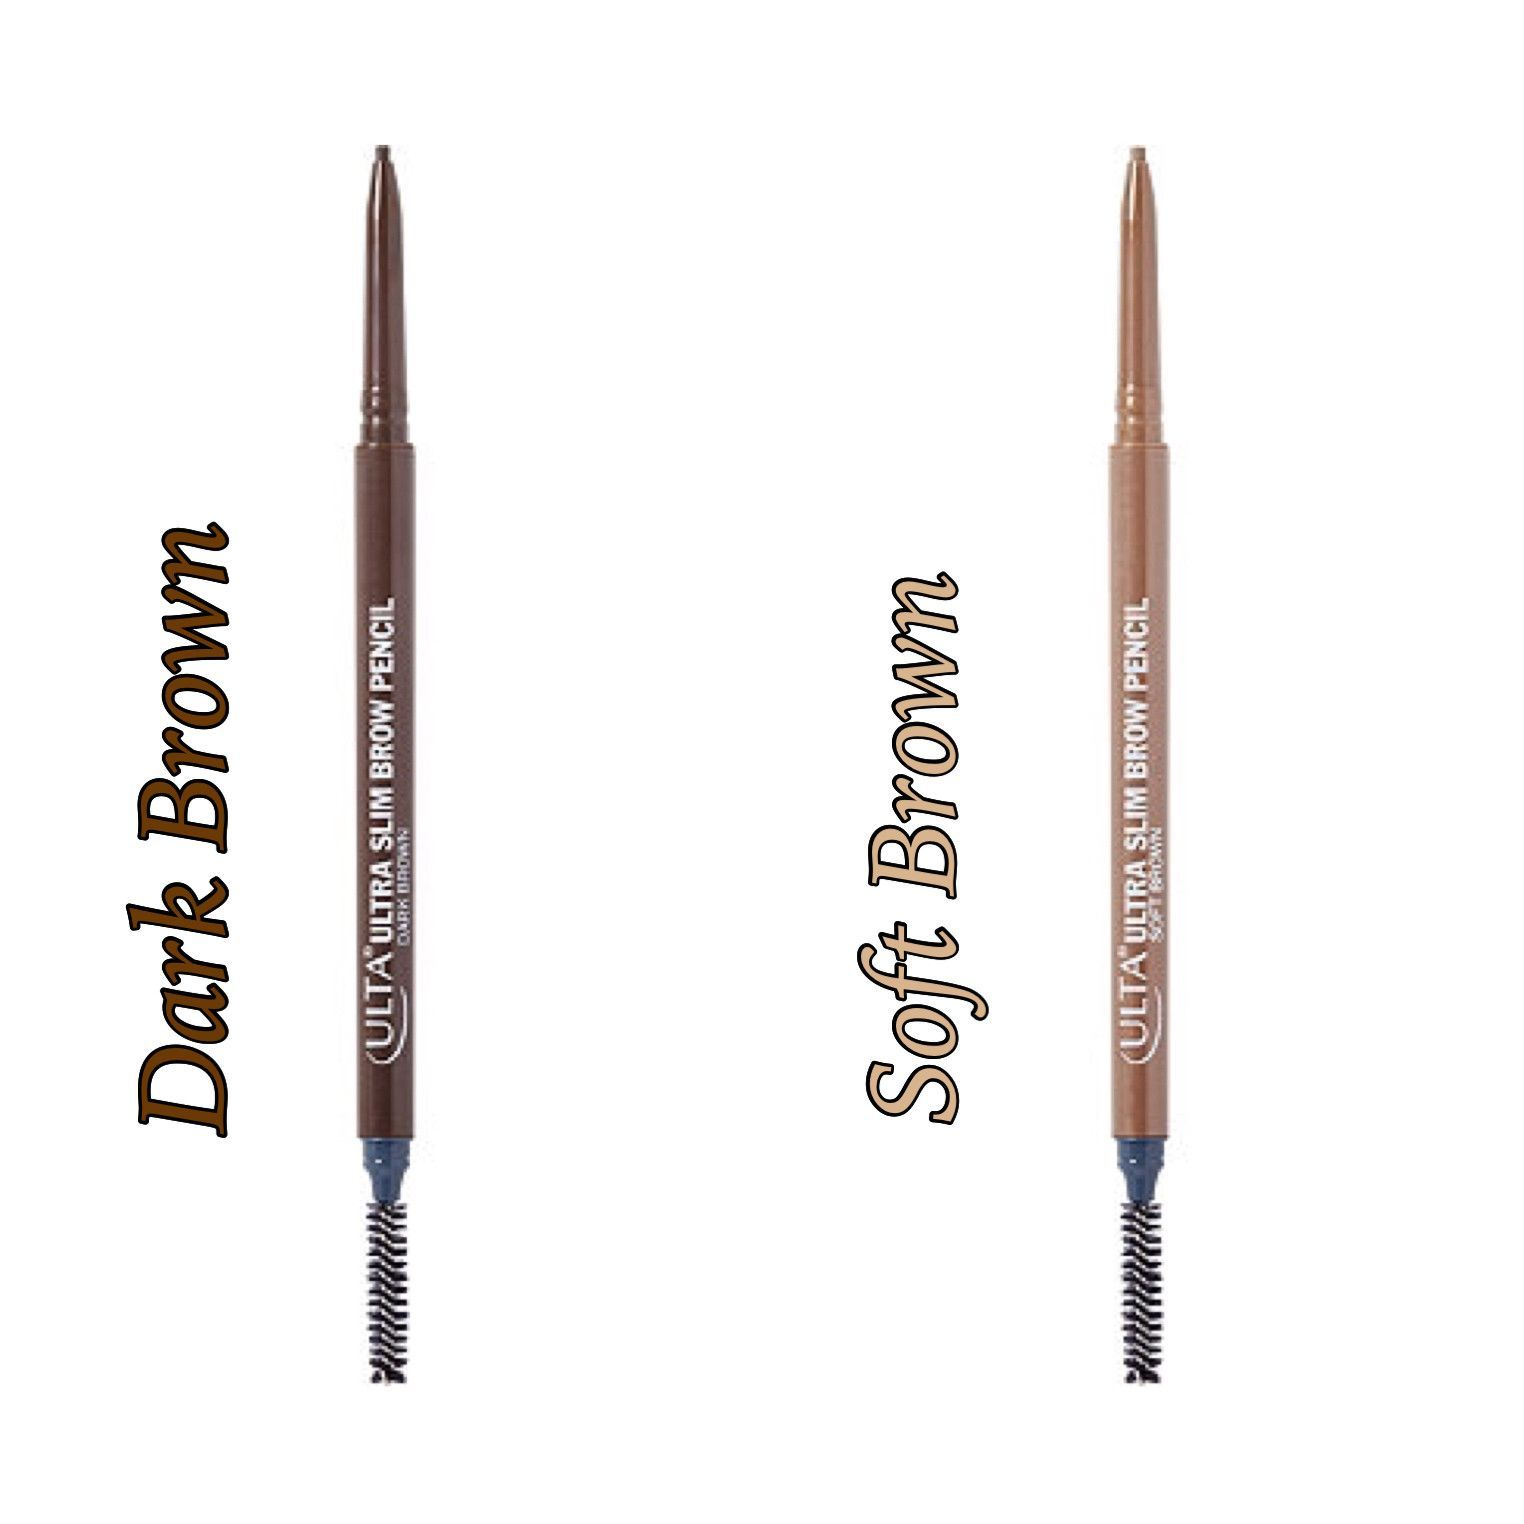 6de41d4af03 Ulta Ultra Slim Brow Pencil Pencil Shading, Medium Brown, Brows, Slim,  Eyebrowns